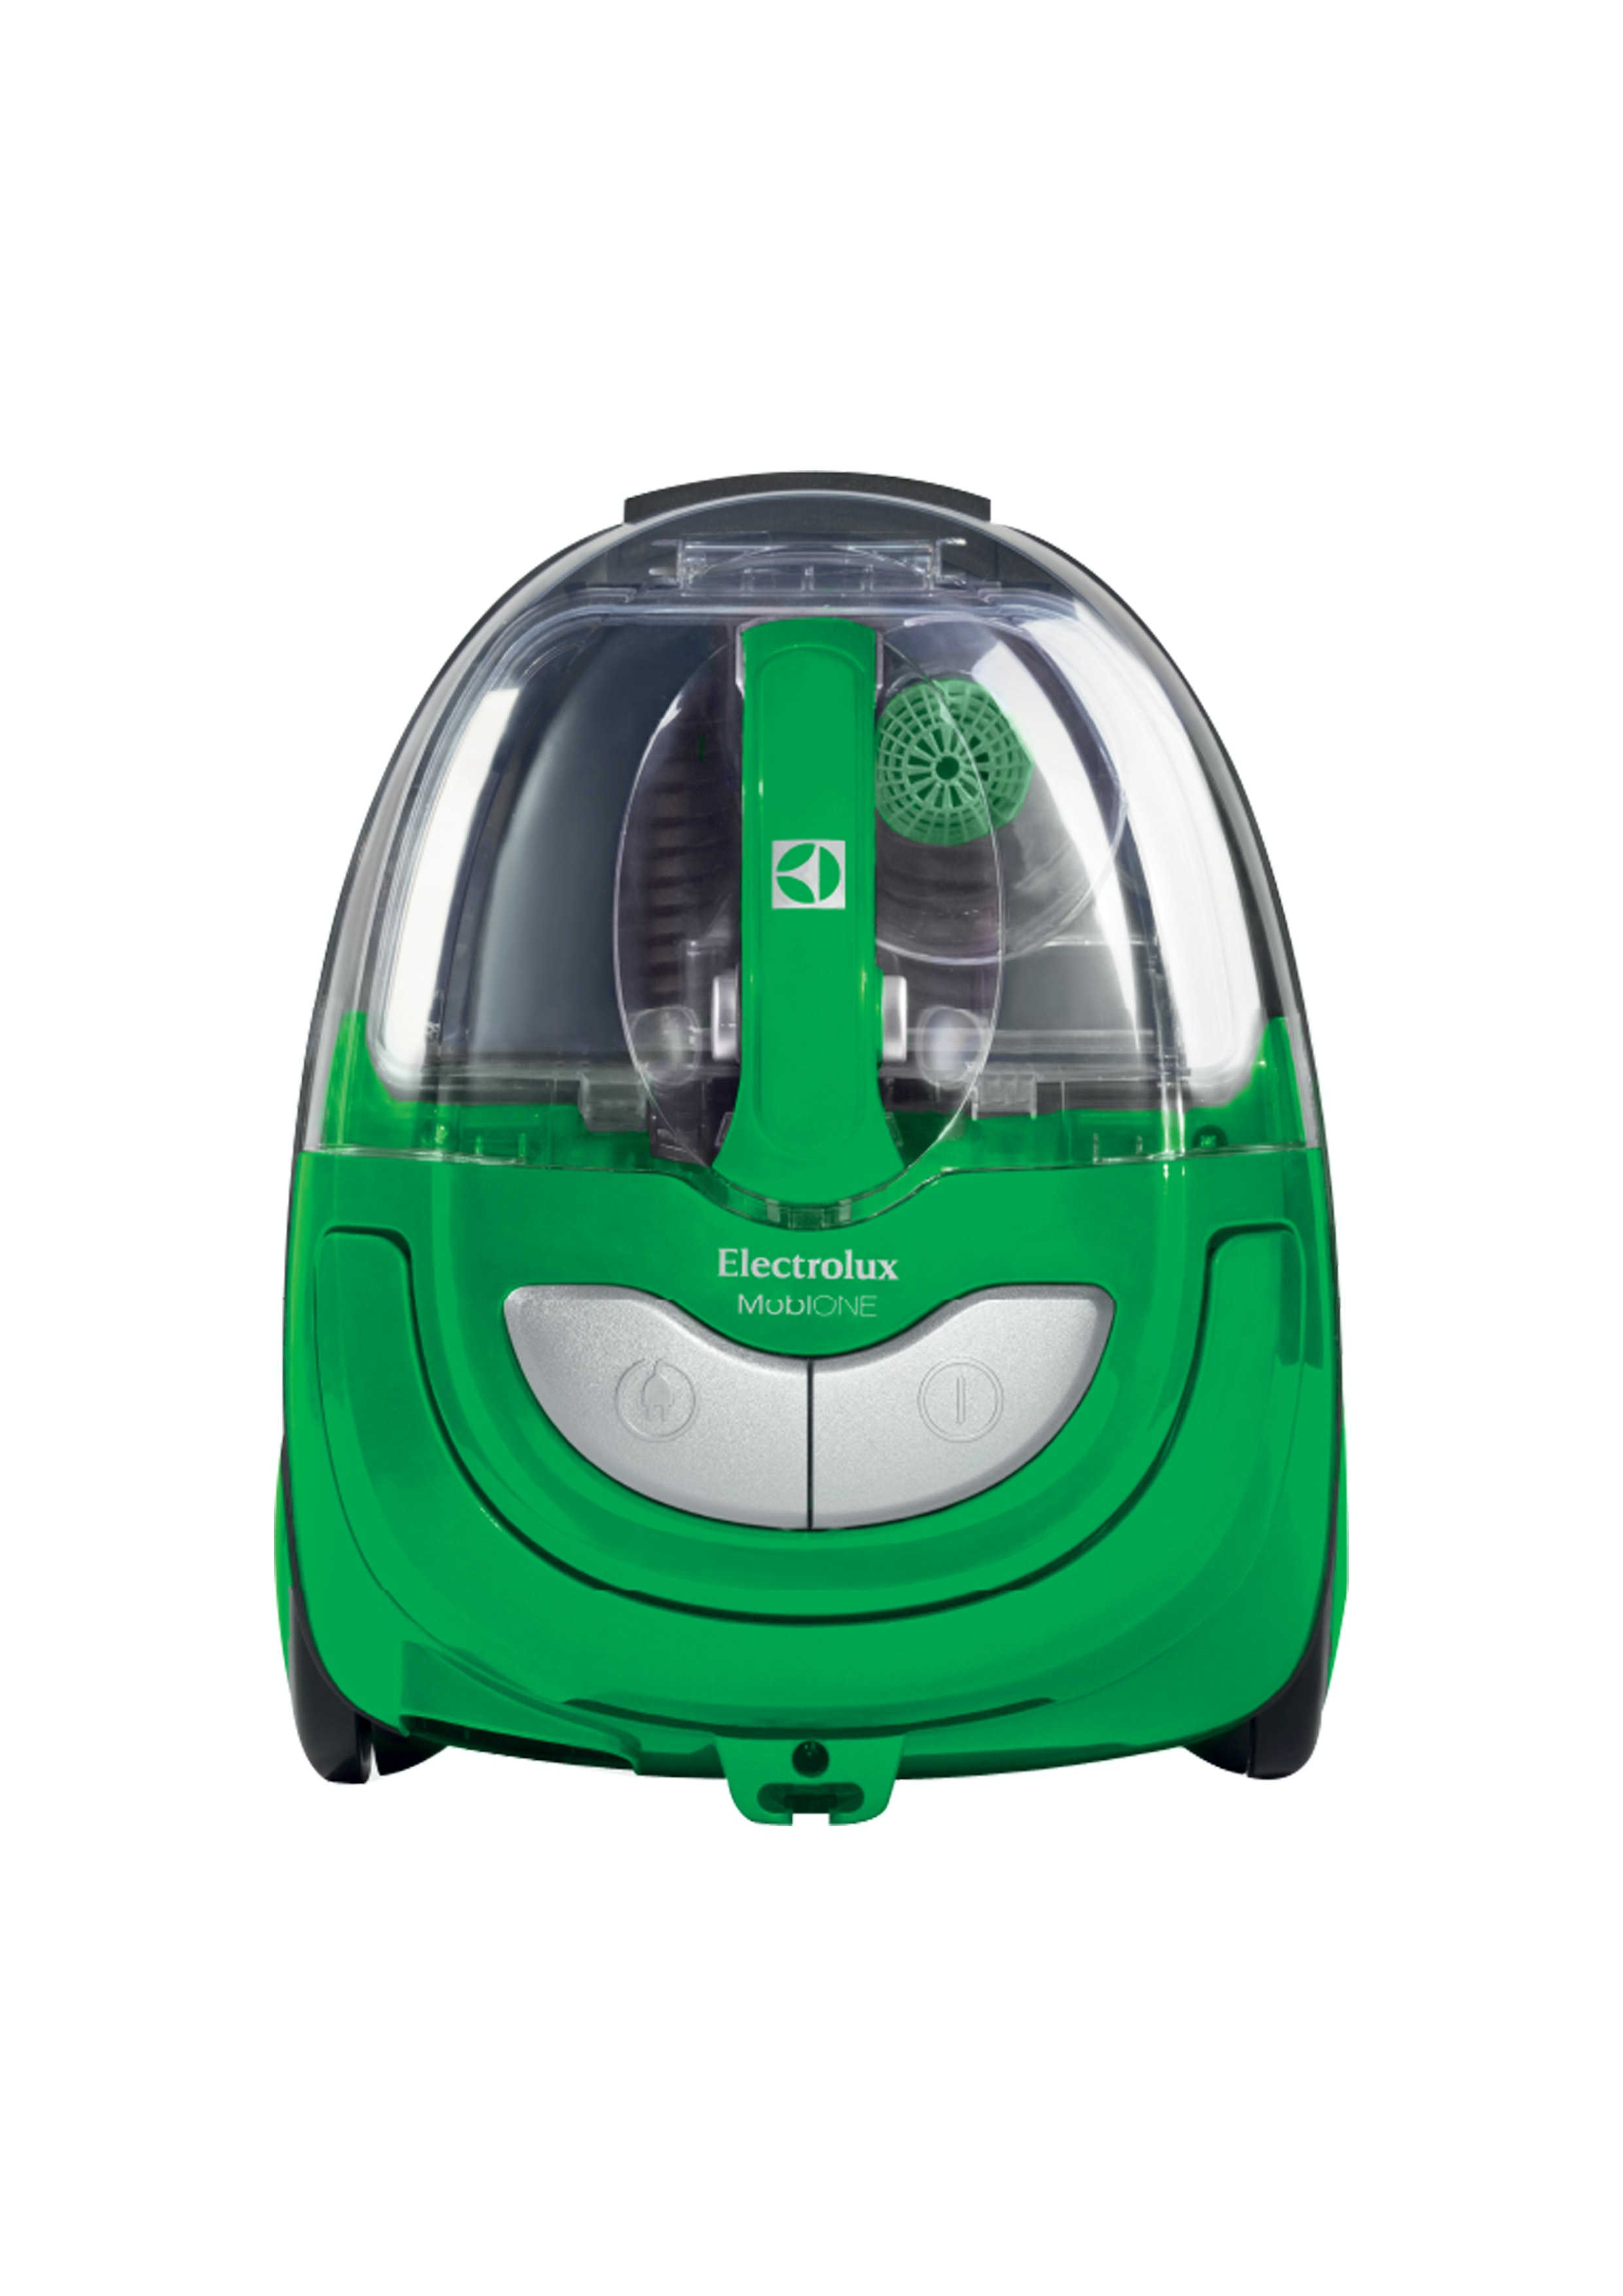 electrolux green vacuum cleaner. electrolux vacuum cleaner zmo 1520 ag black green